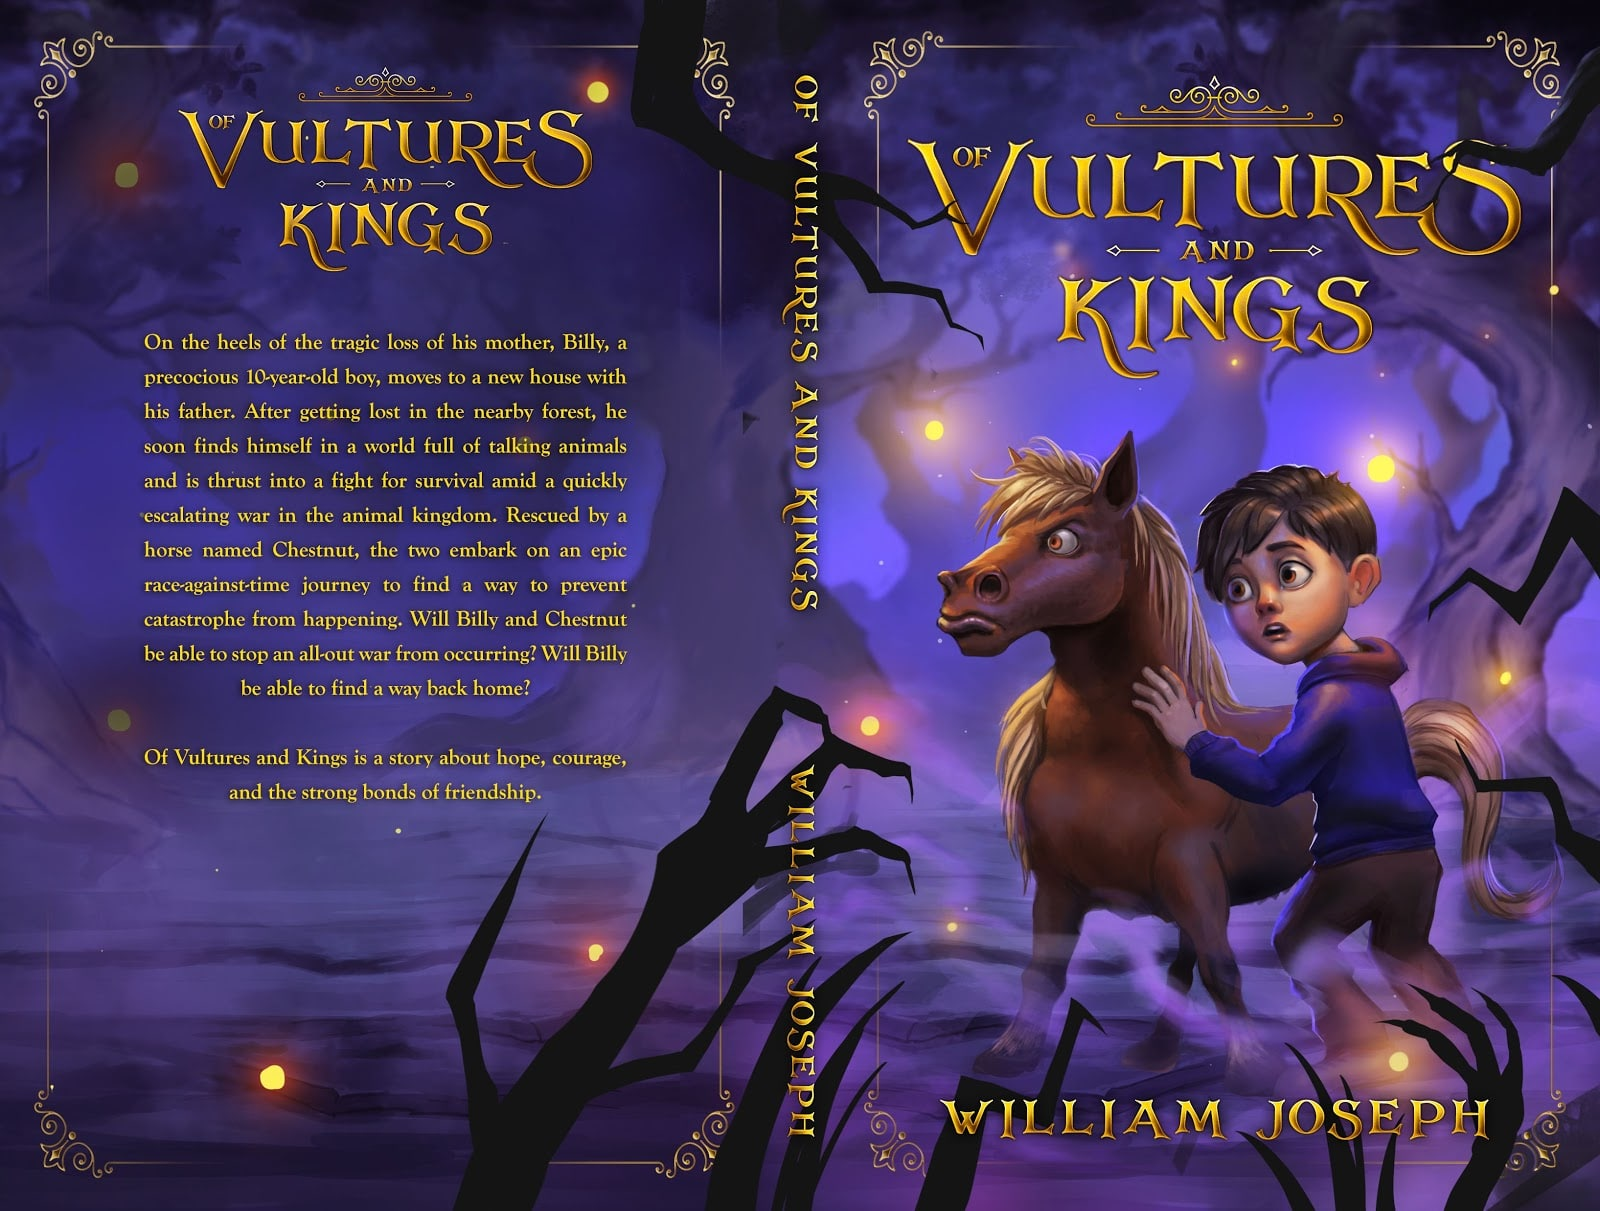 of Vultures and Kings by William Joseph an example of children's book cover design fro kids over 9